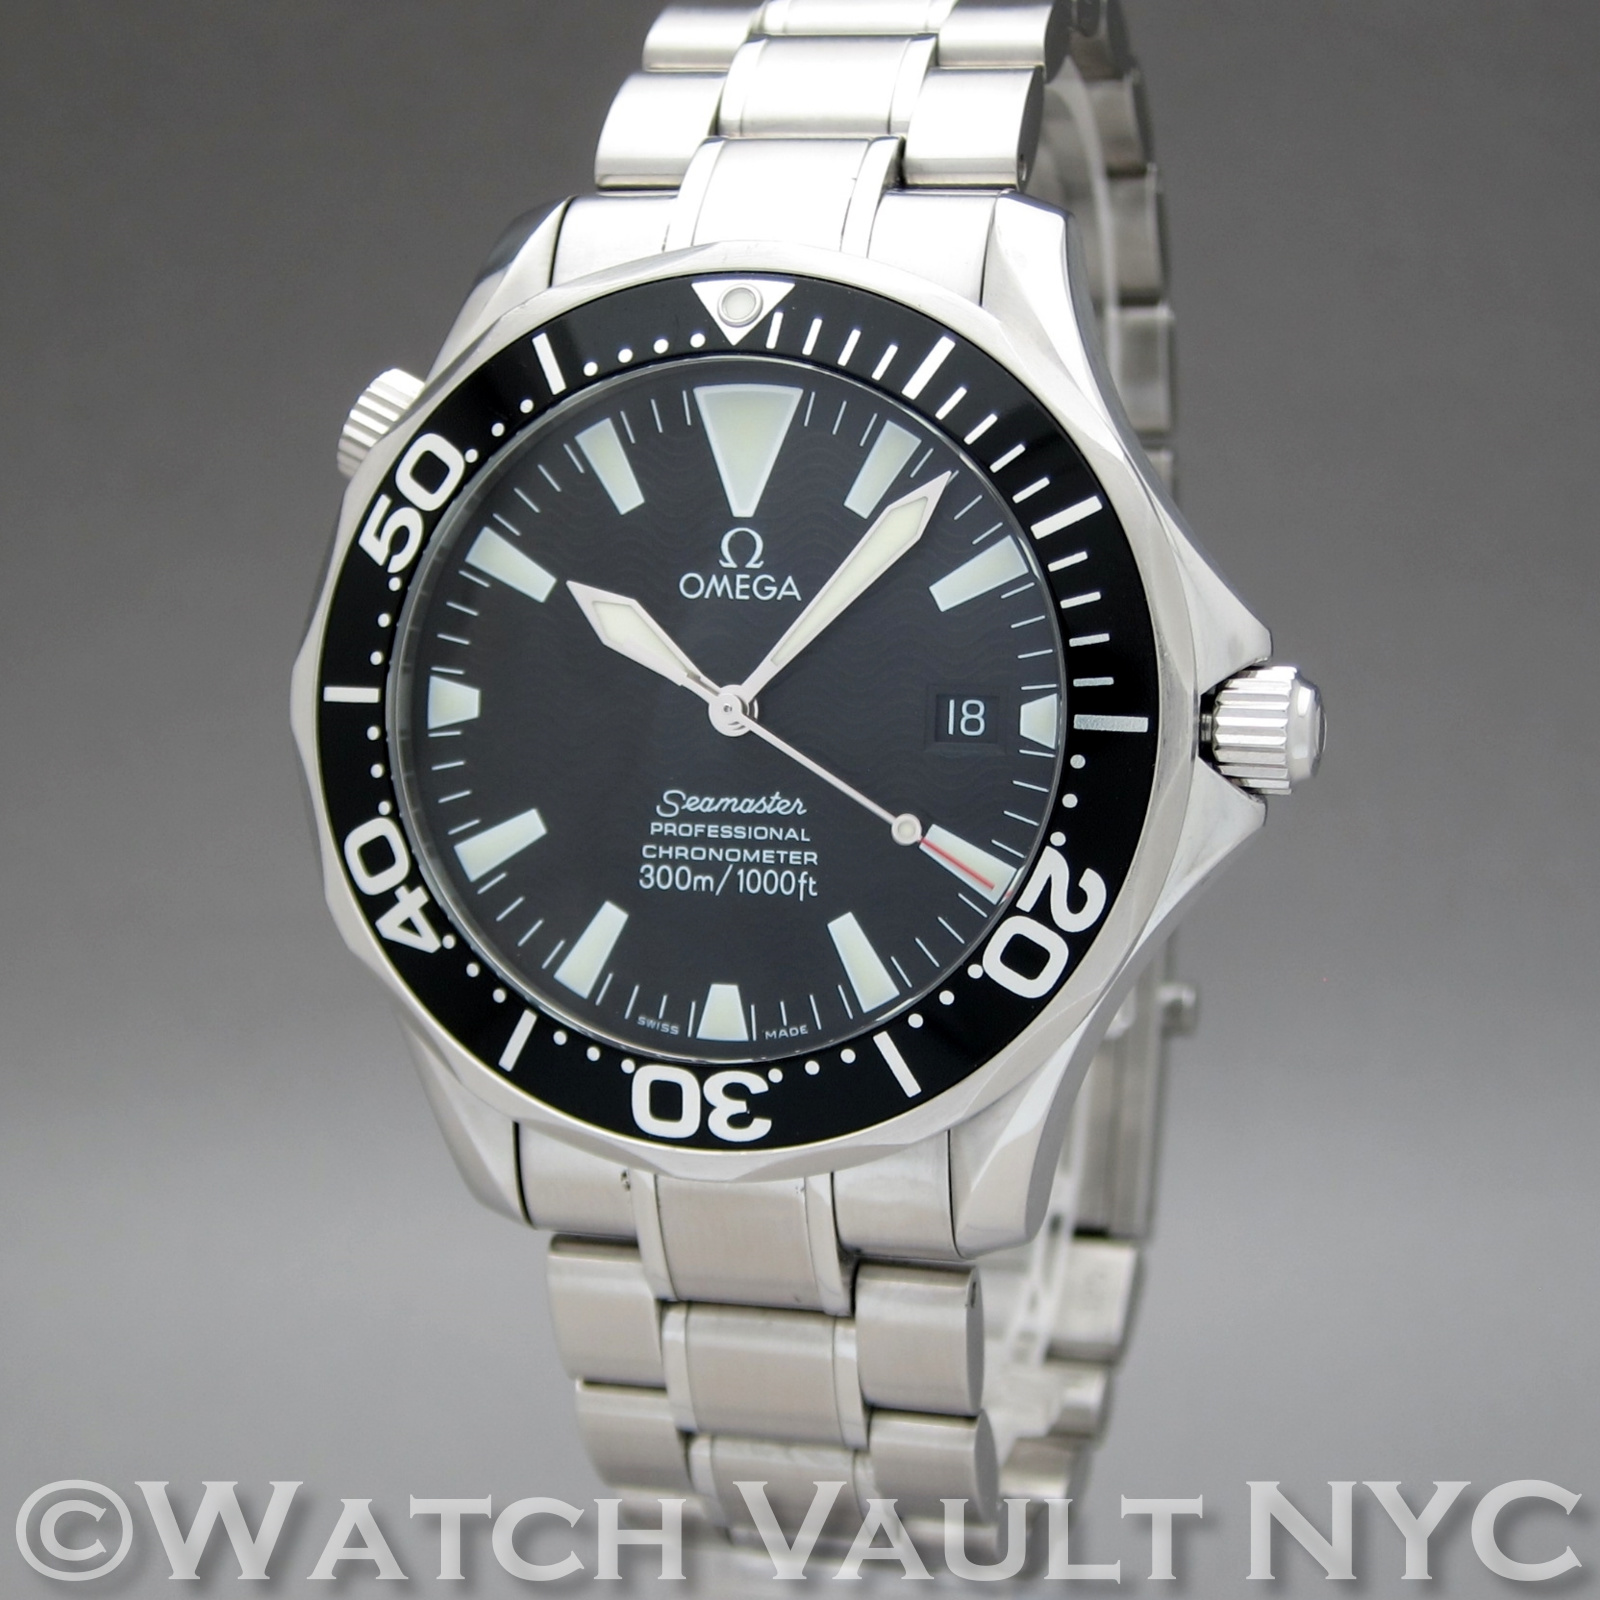 Omega seamaster professional sword hands 300m 41mm auto for Omega seamaster professional